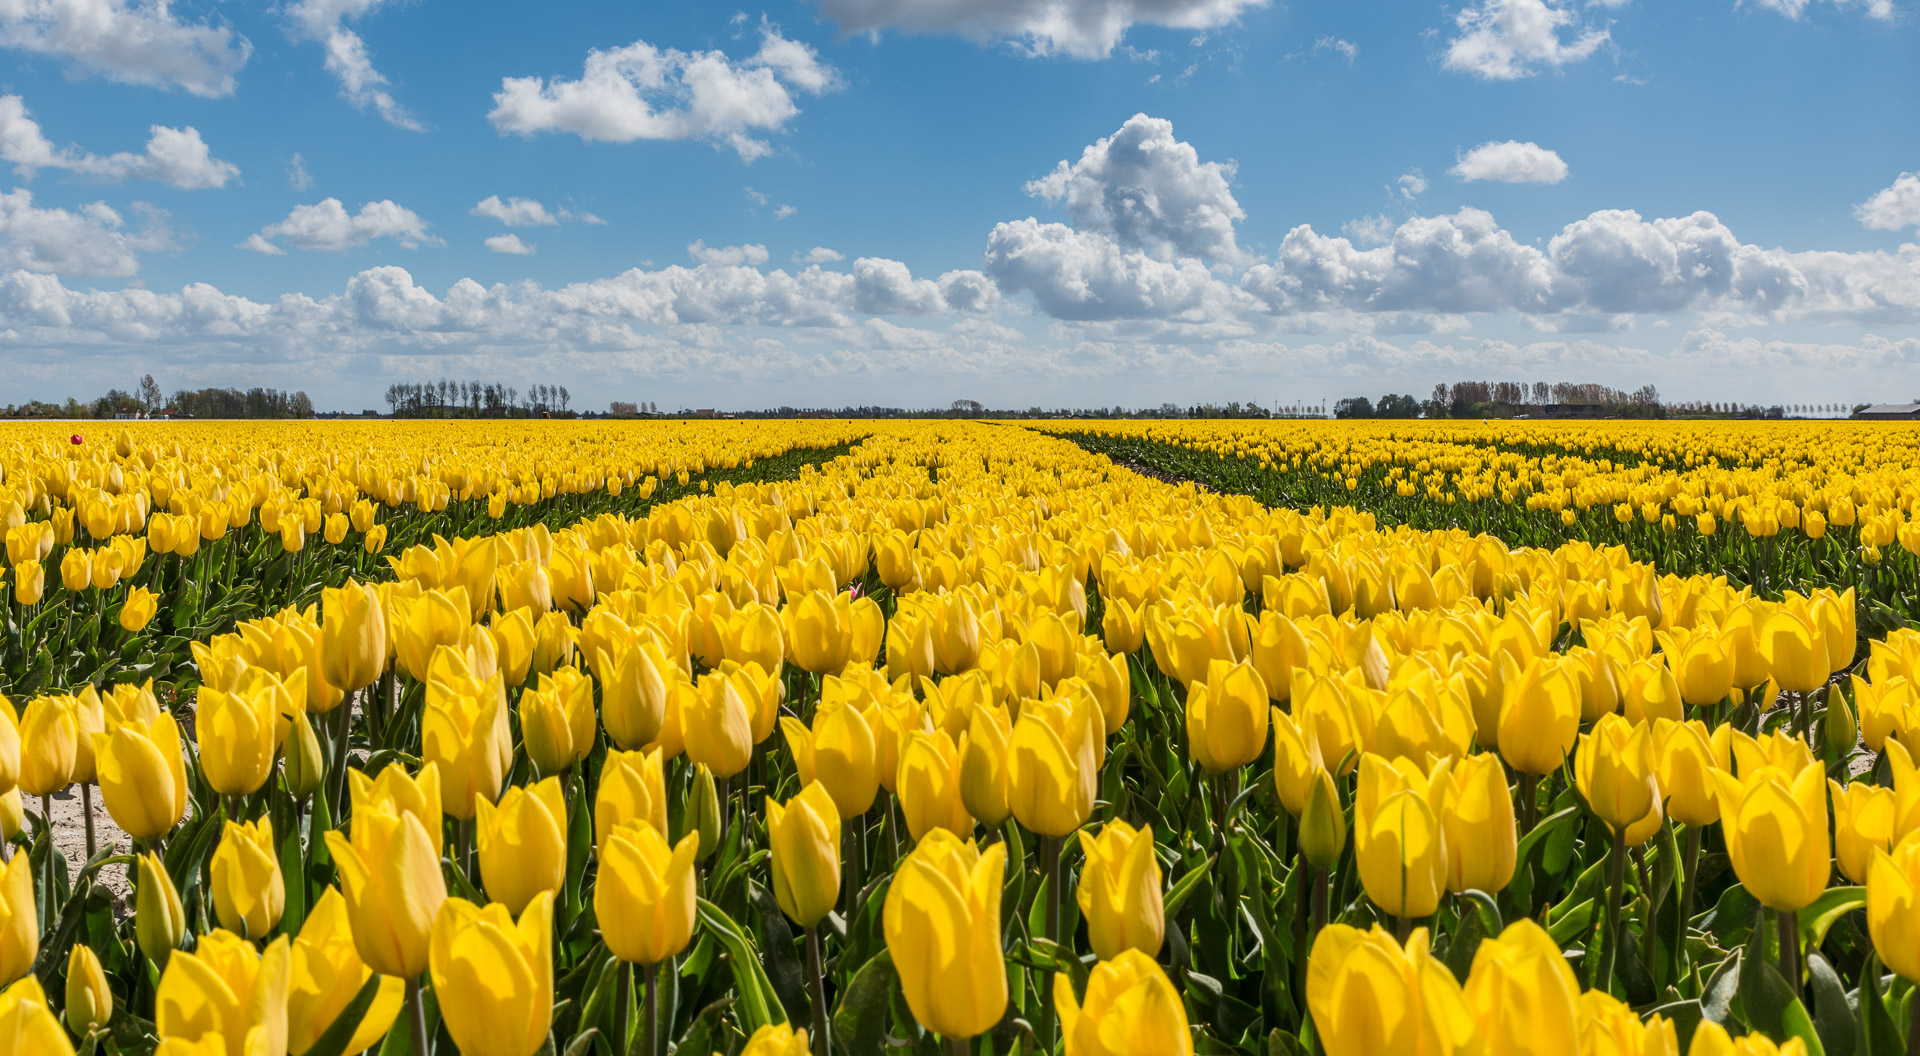 Yellow tulips under a beautiful blue clouded sky.